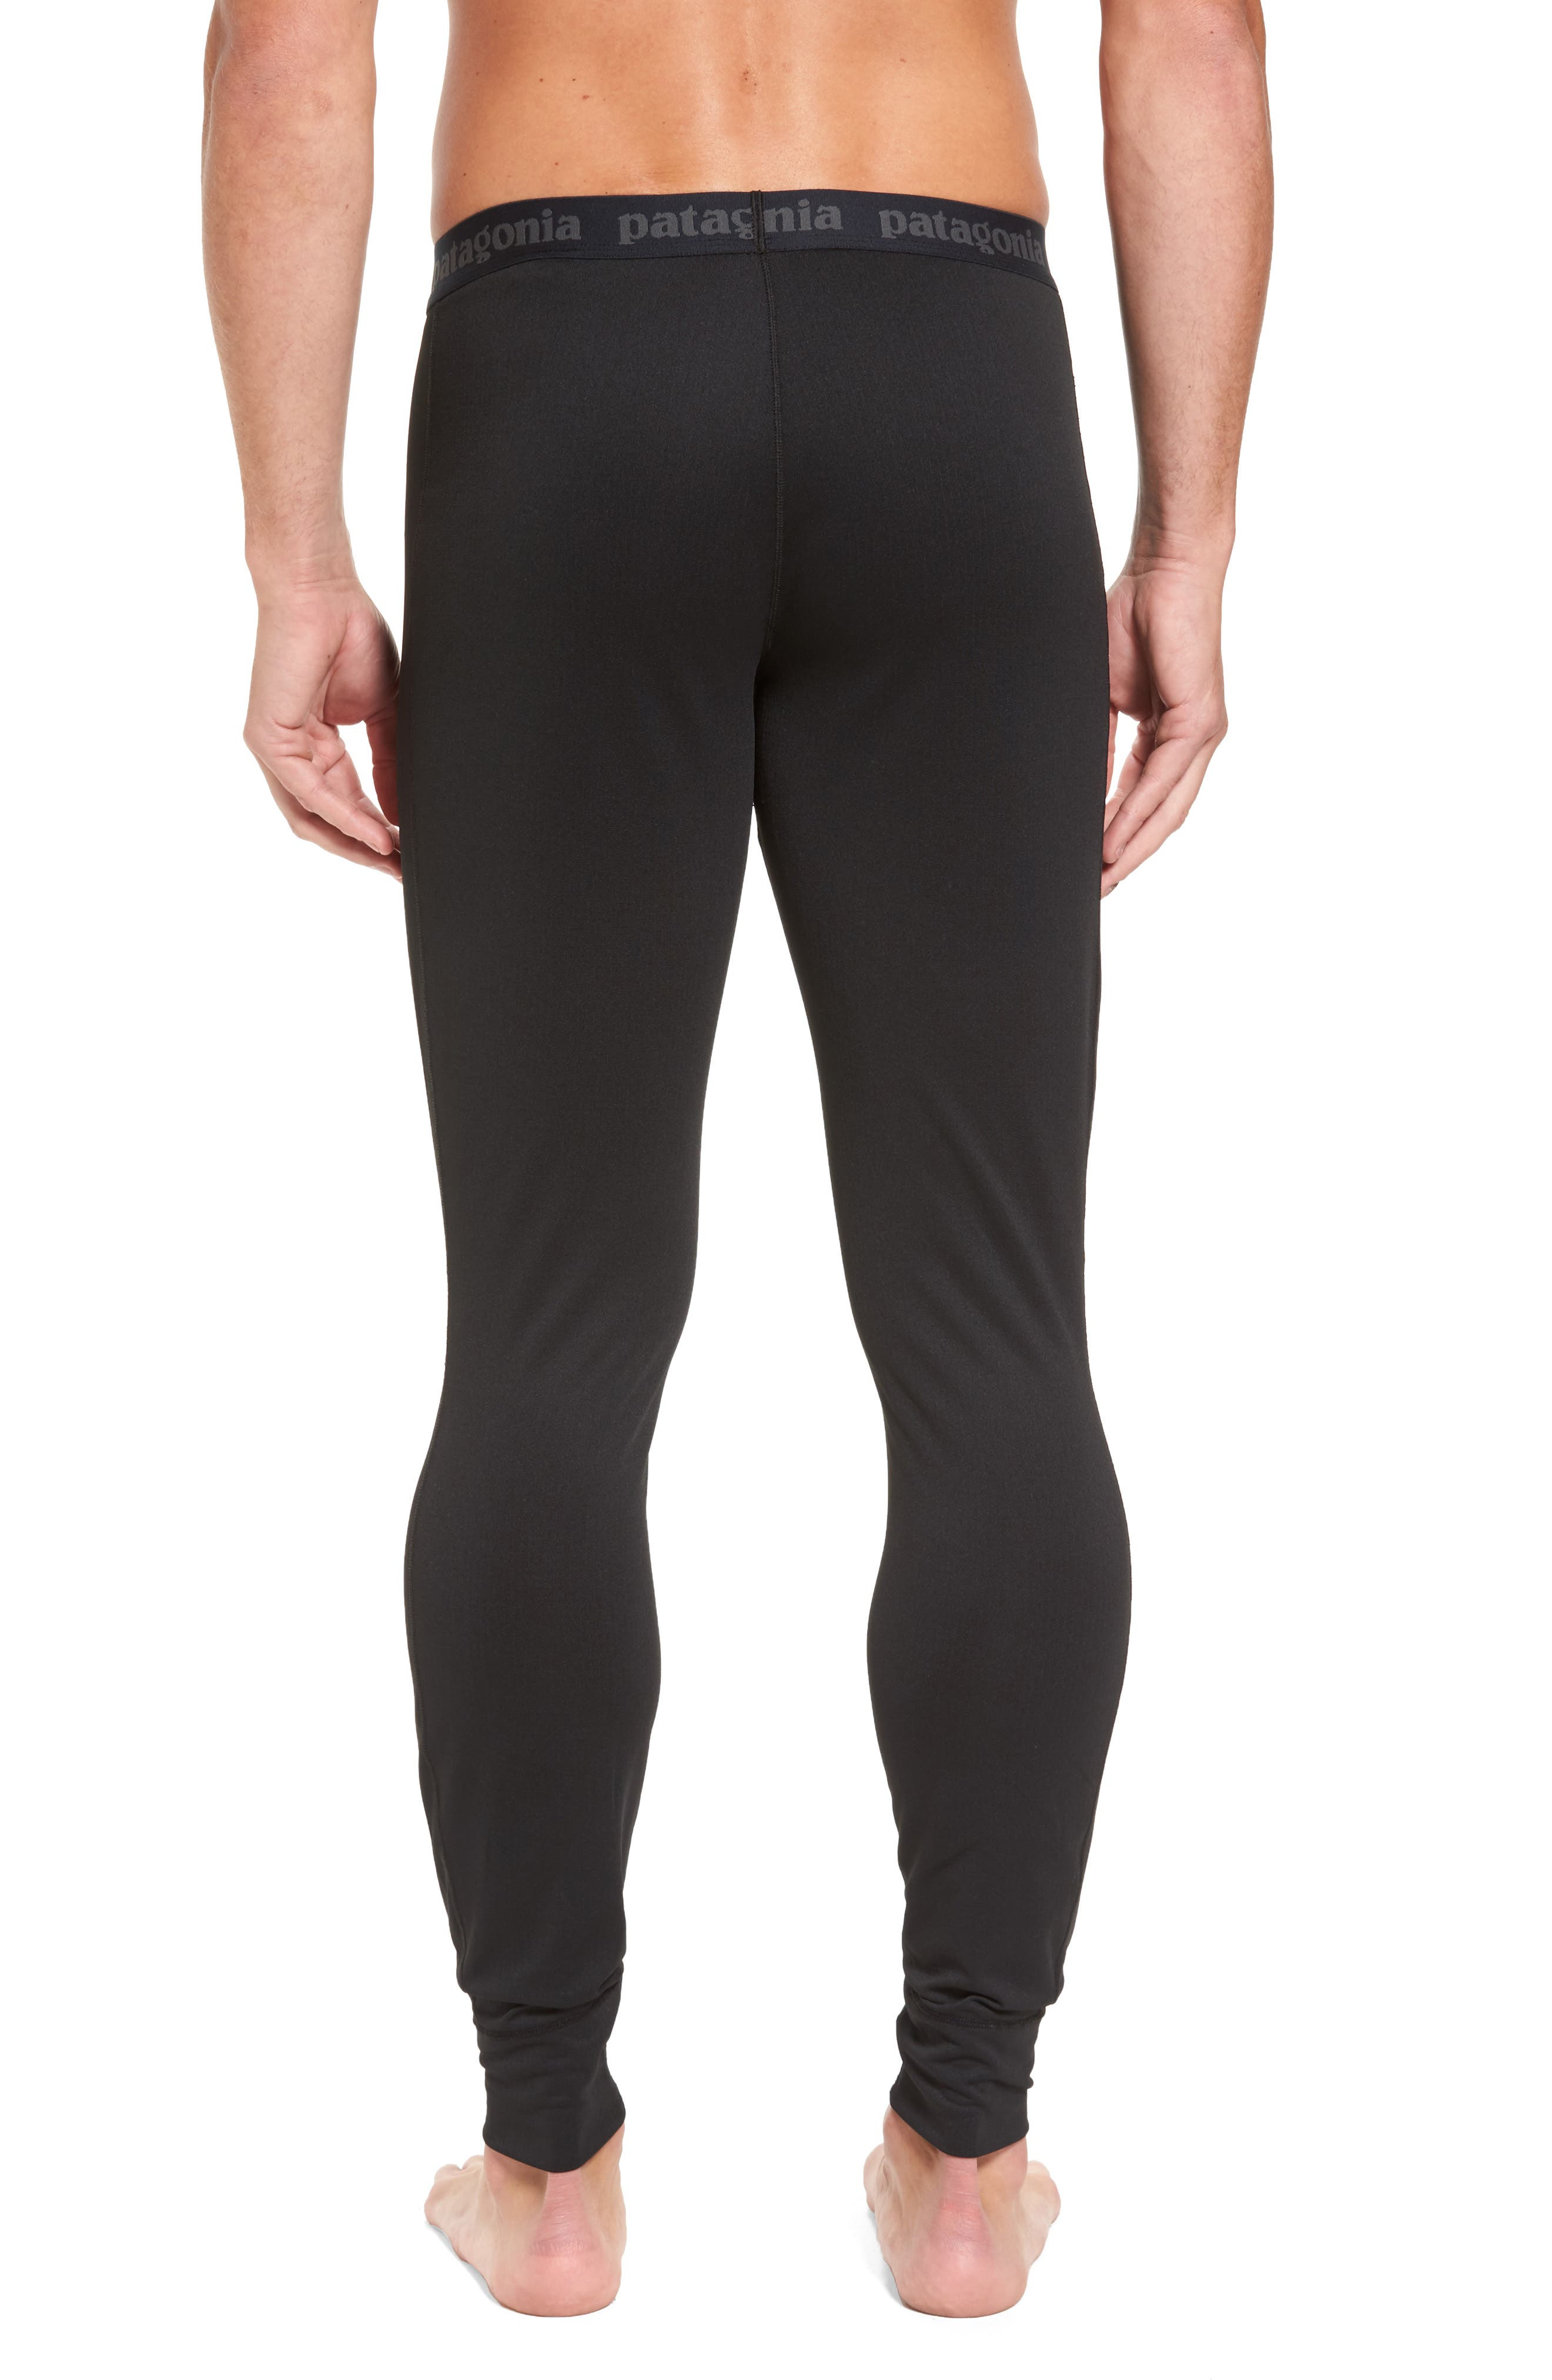 Capilene Midweight Base Layer Tights,                             Alternate thumbnail 2, color,                             001